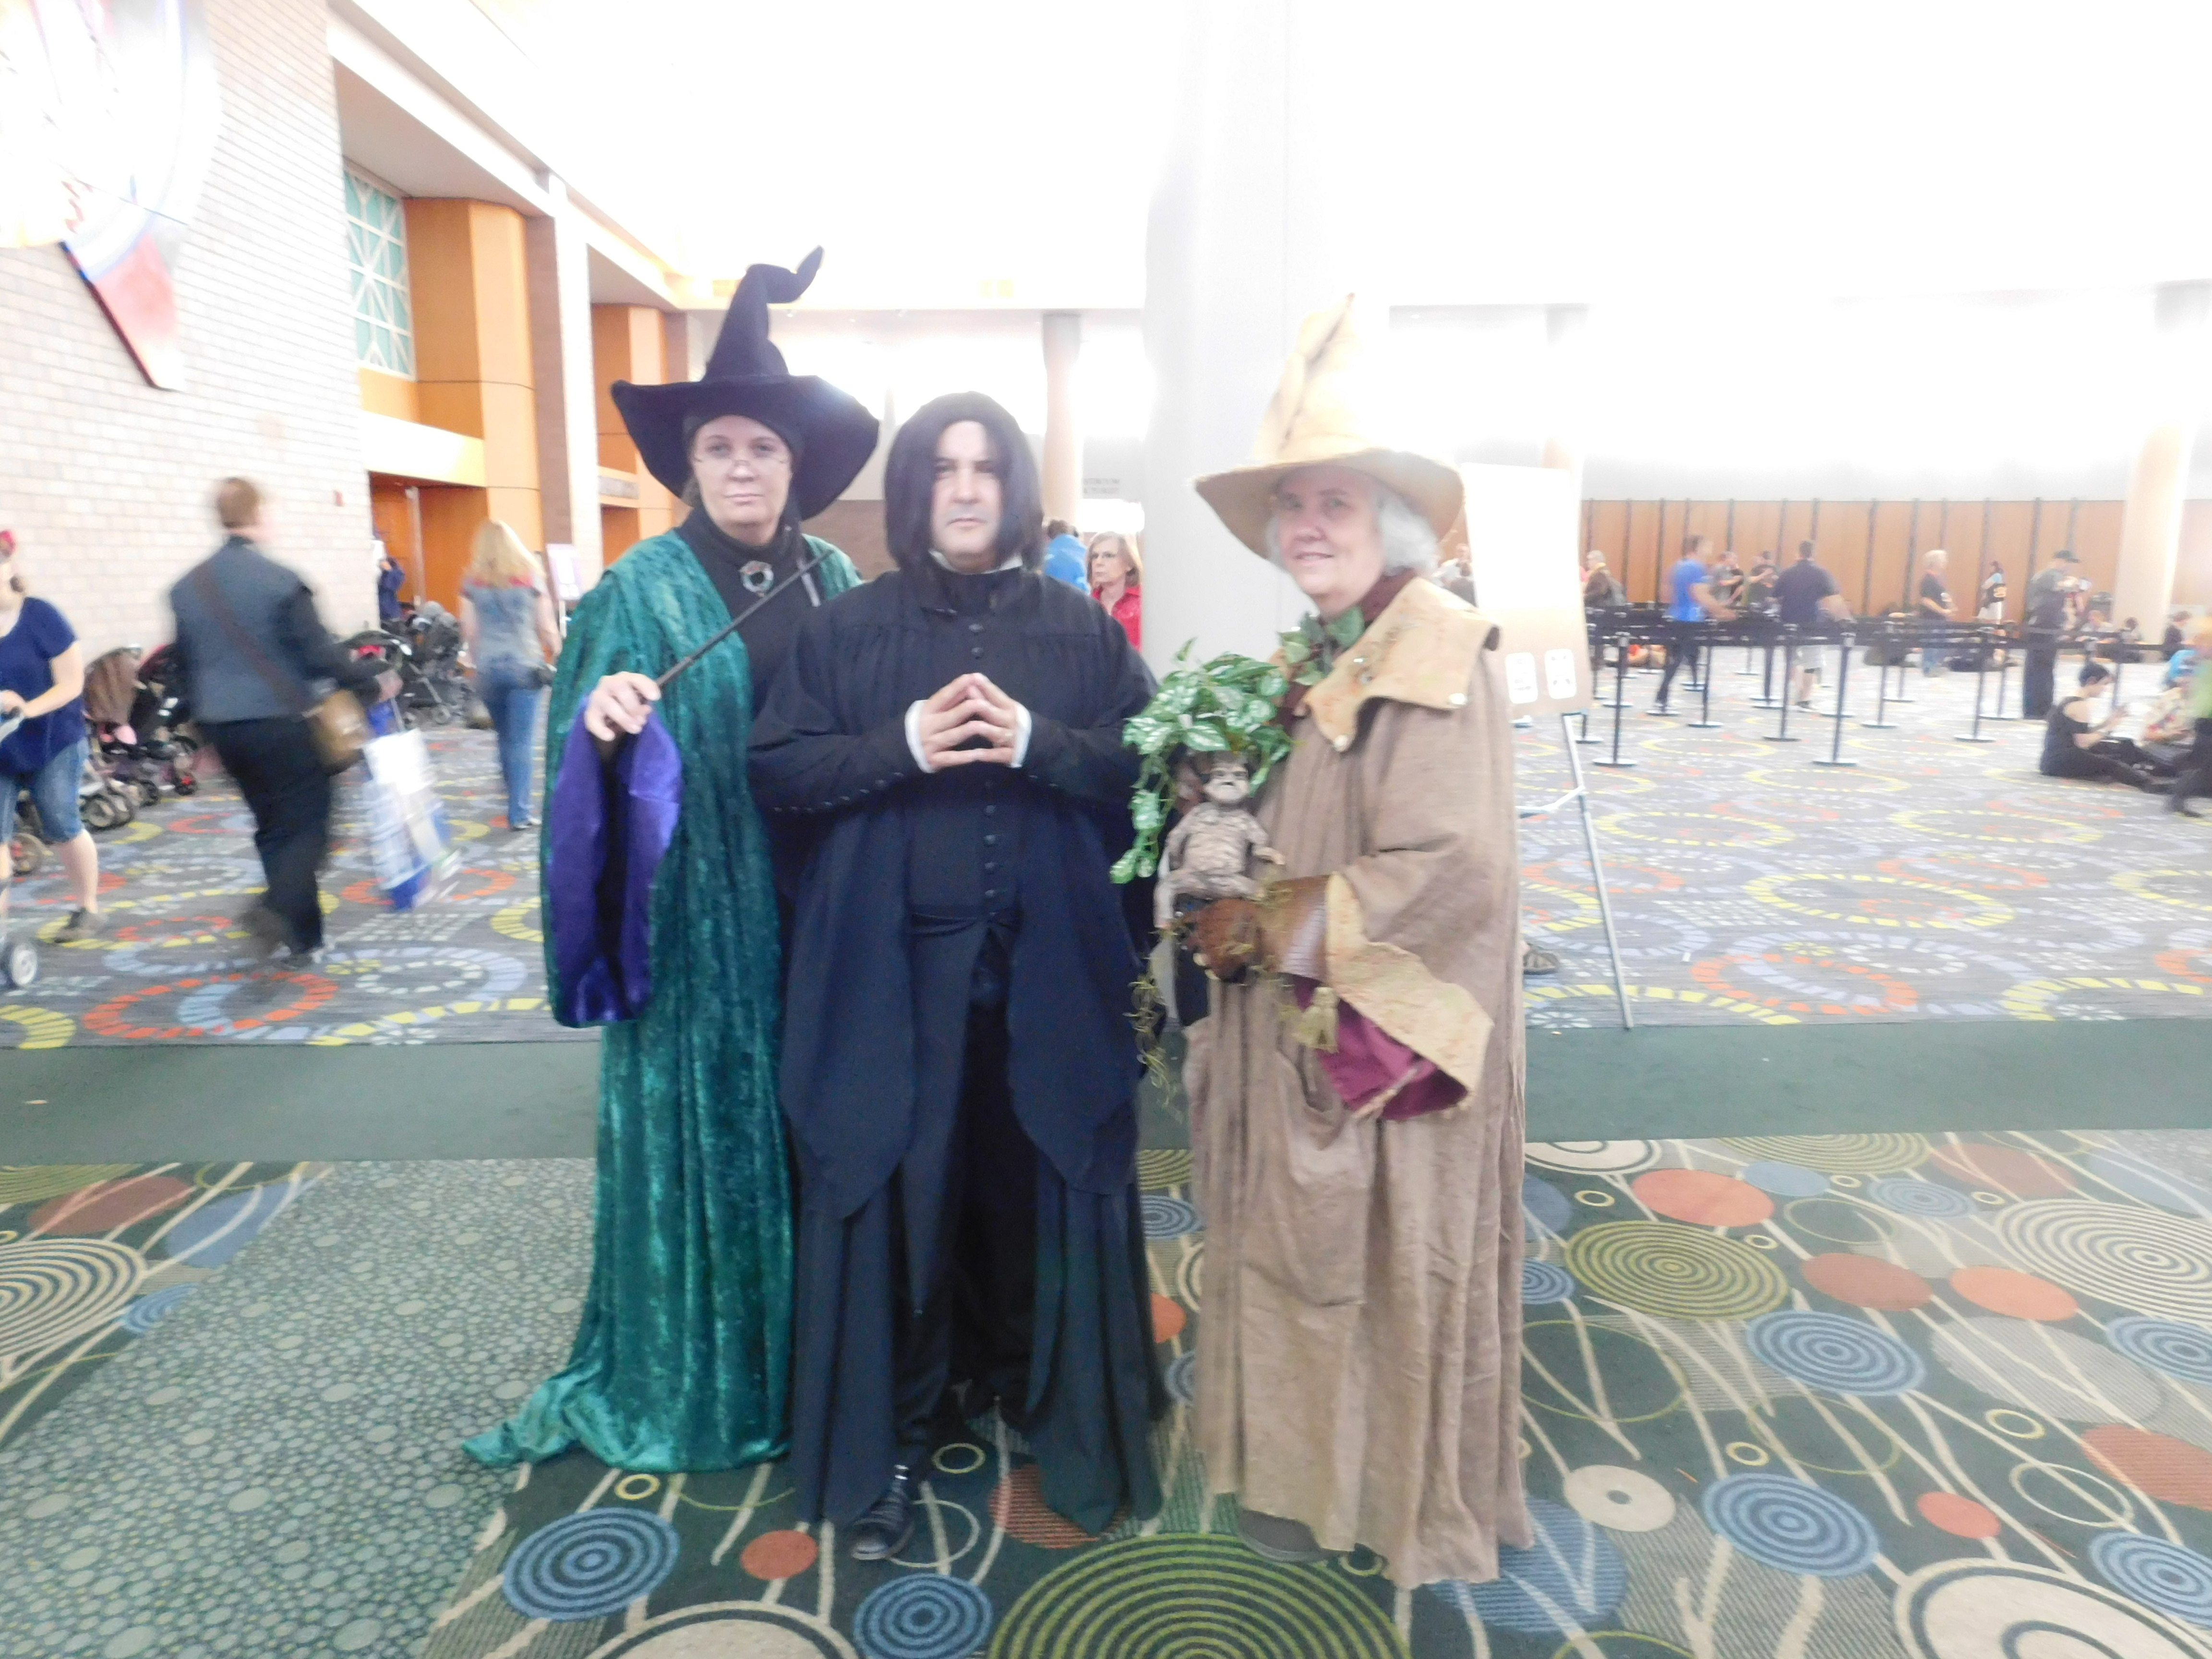 SLCCd3.057 - Profs. McGonagall, Snape, and Sprout